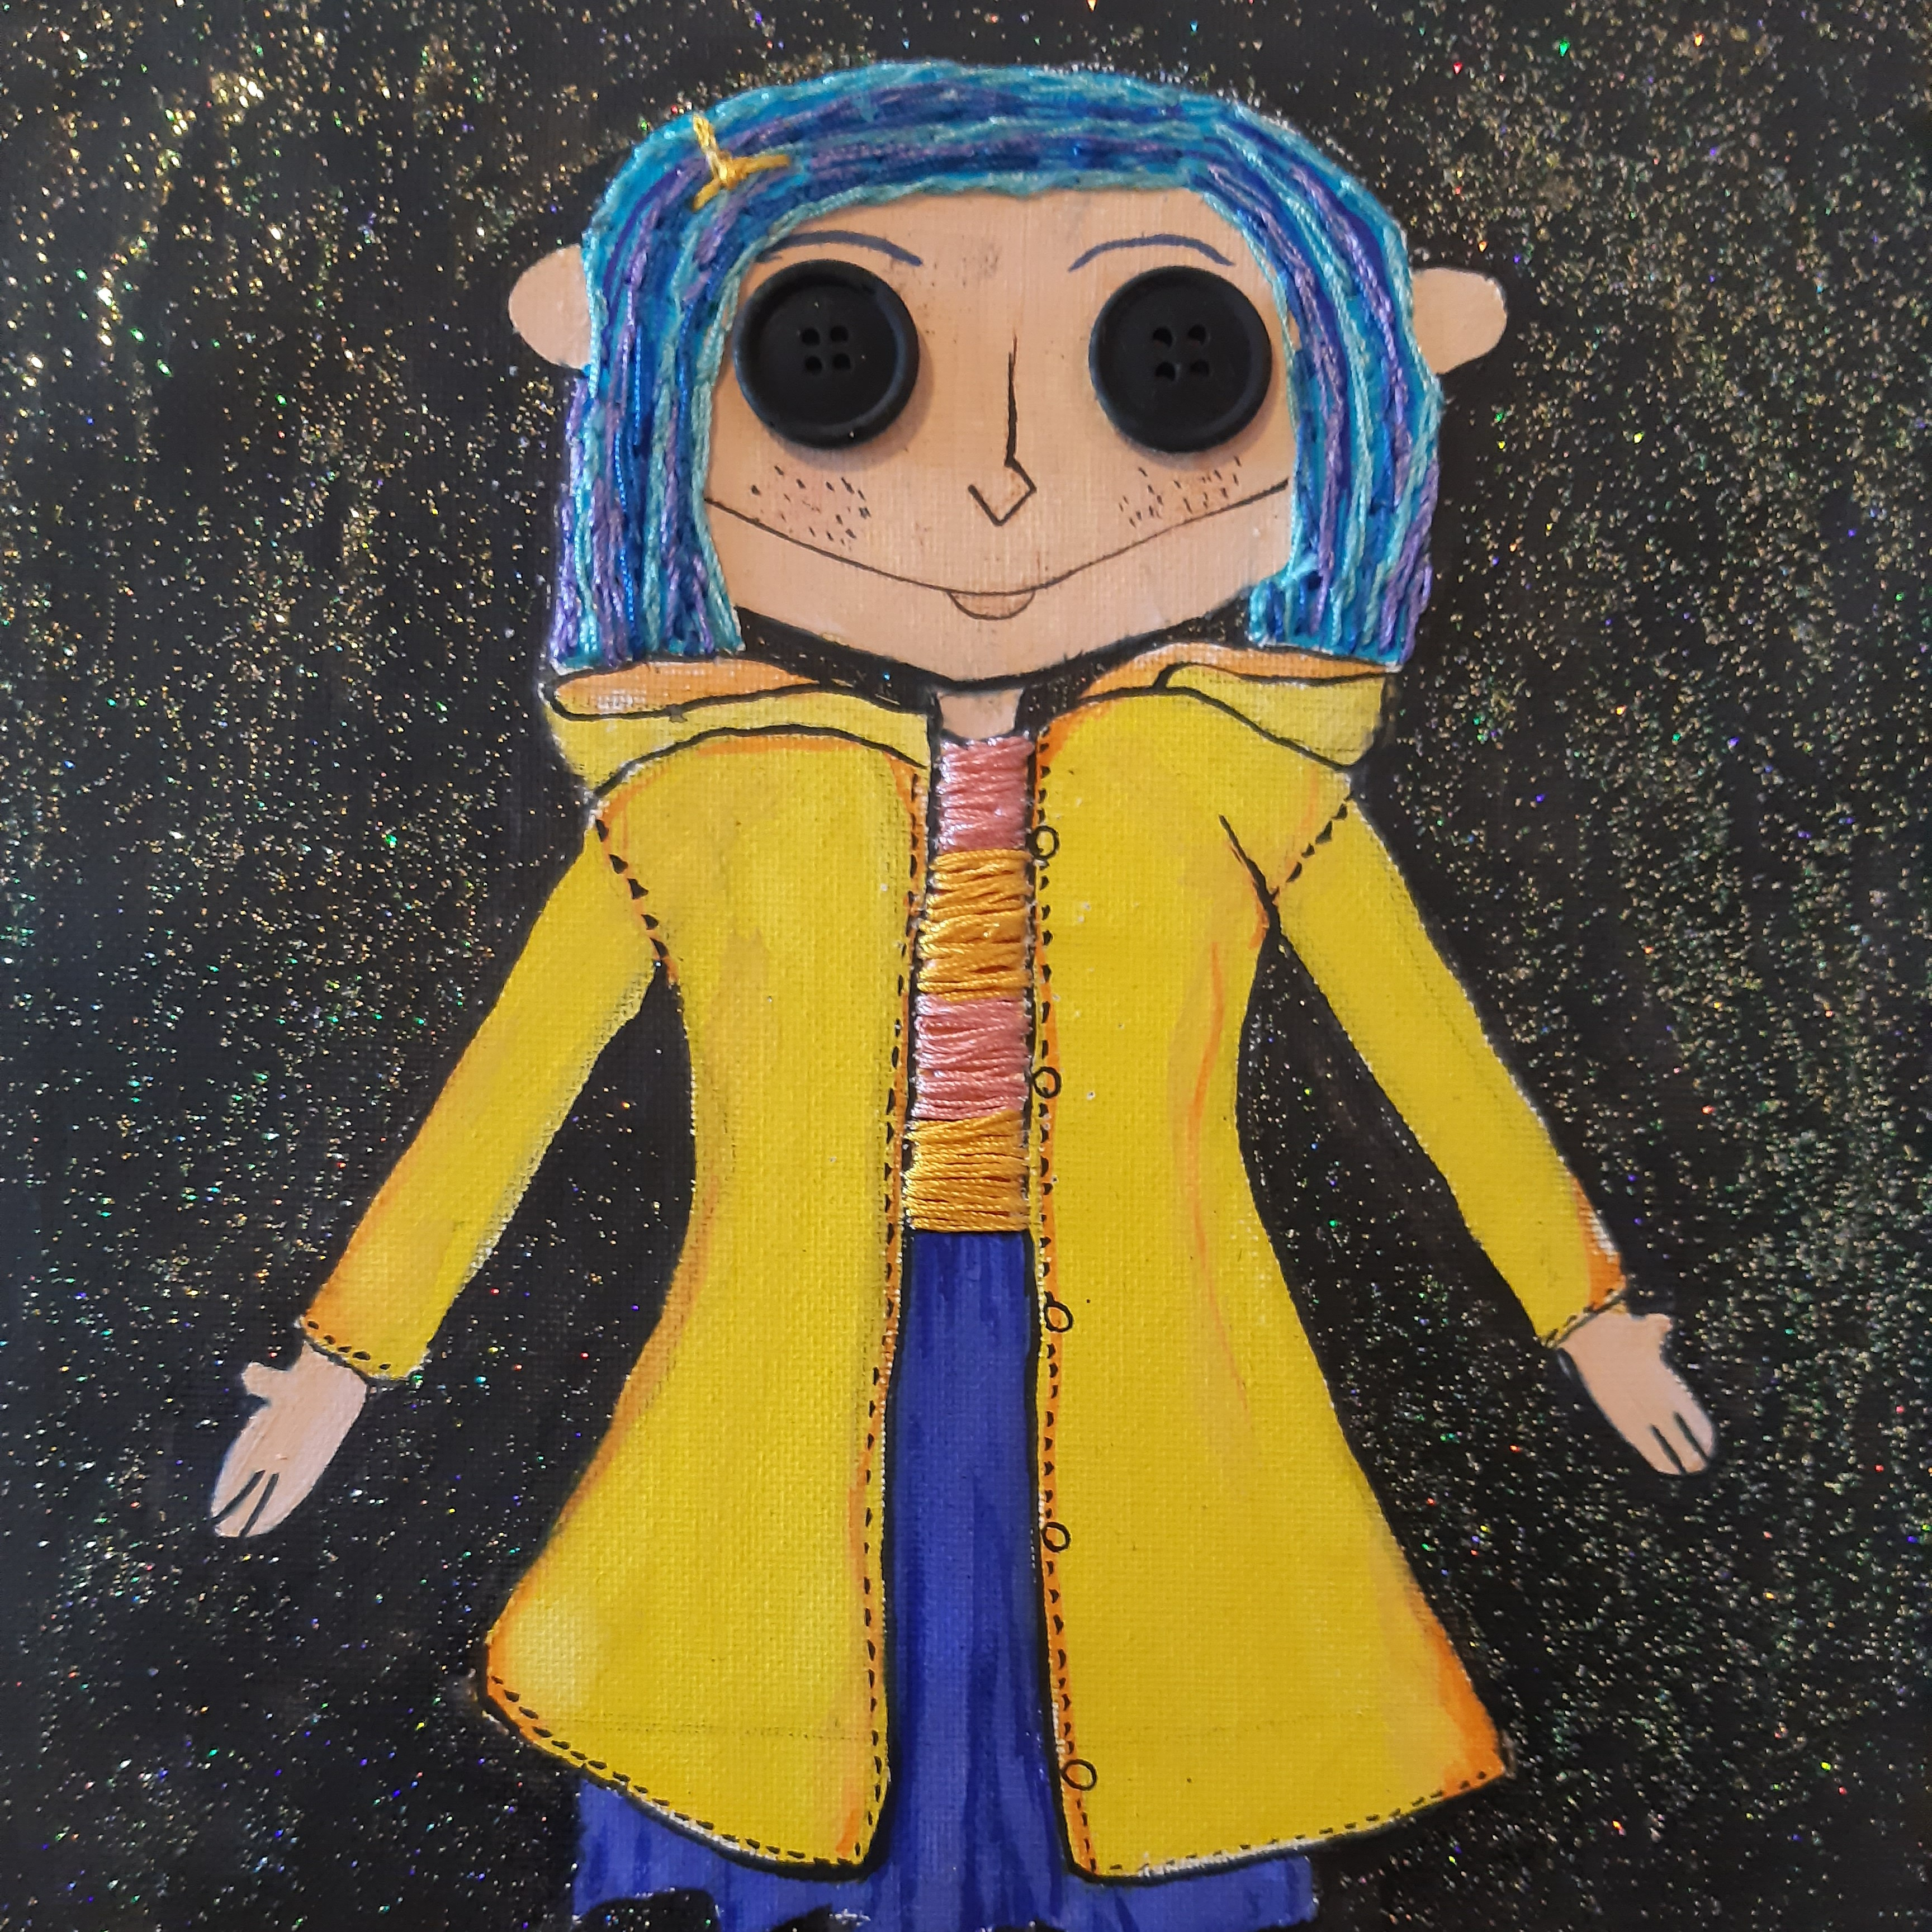 Hand Painted Stitched Coraline Doll 12x10 Inch Depop